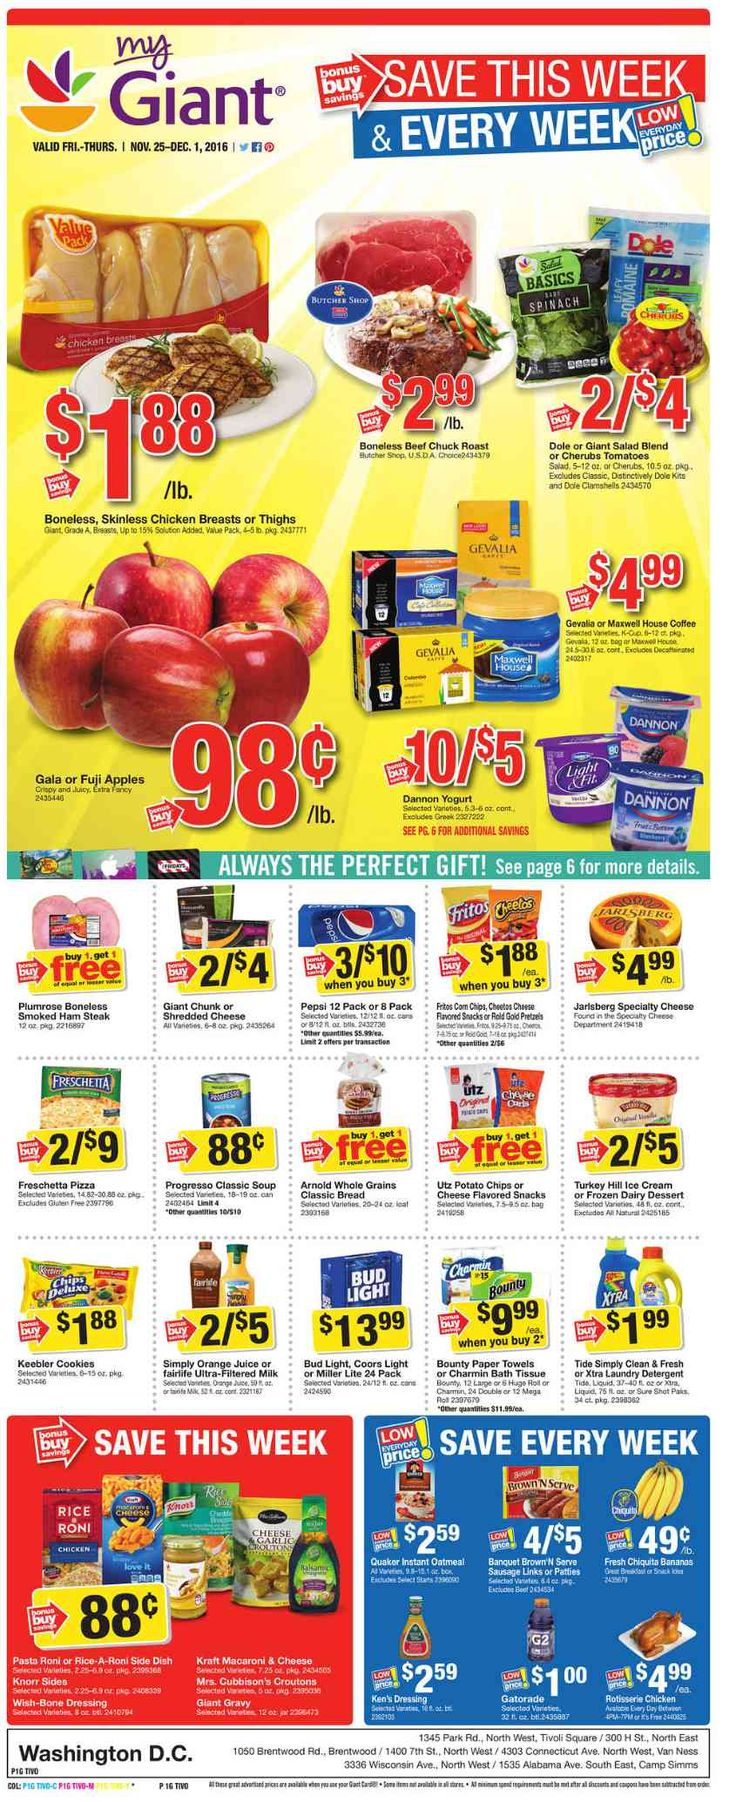 Giant Food Weekly Ad November 25 - December 1, 2016 - http://www.olcatalog.com/grocery/giant-food-weekly-ad.html